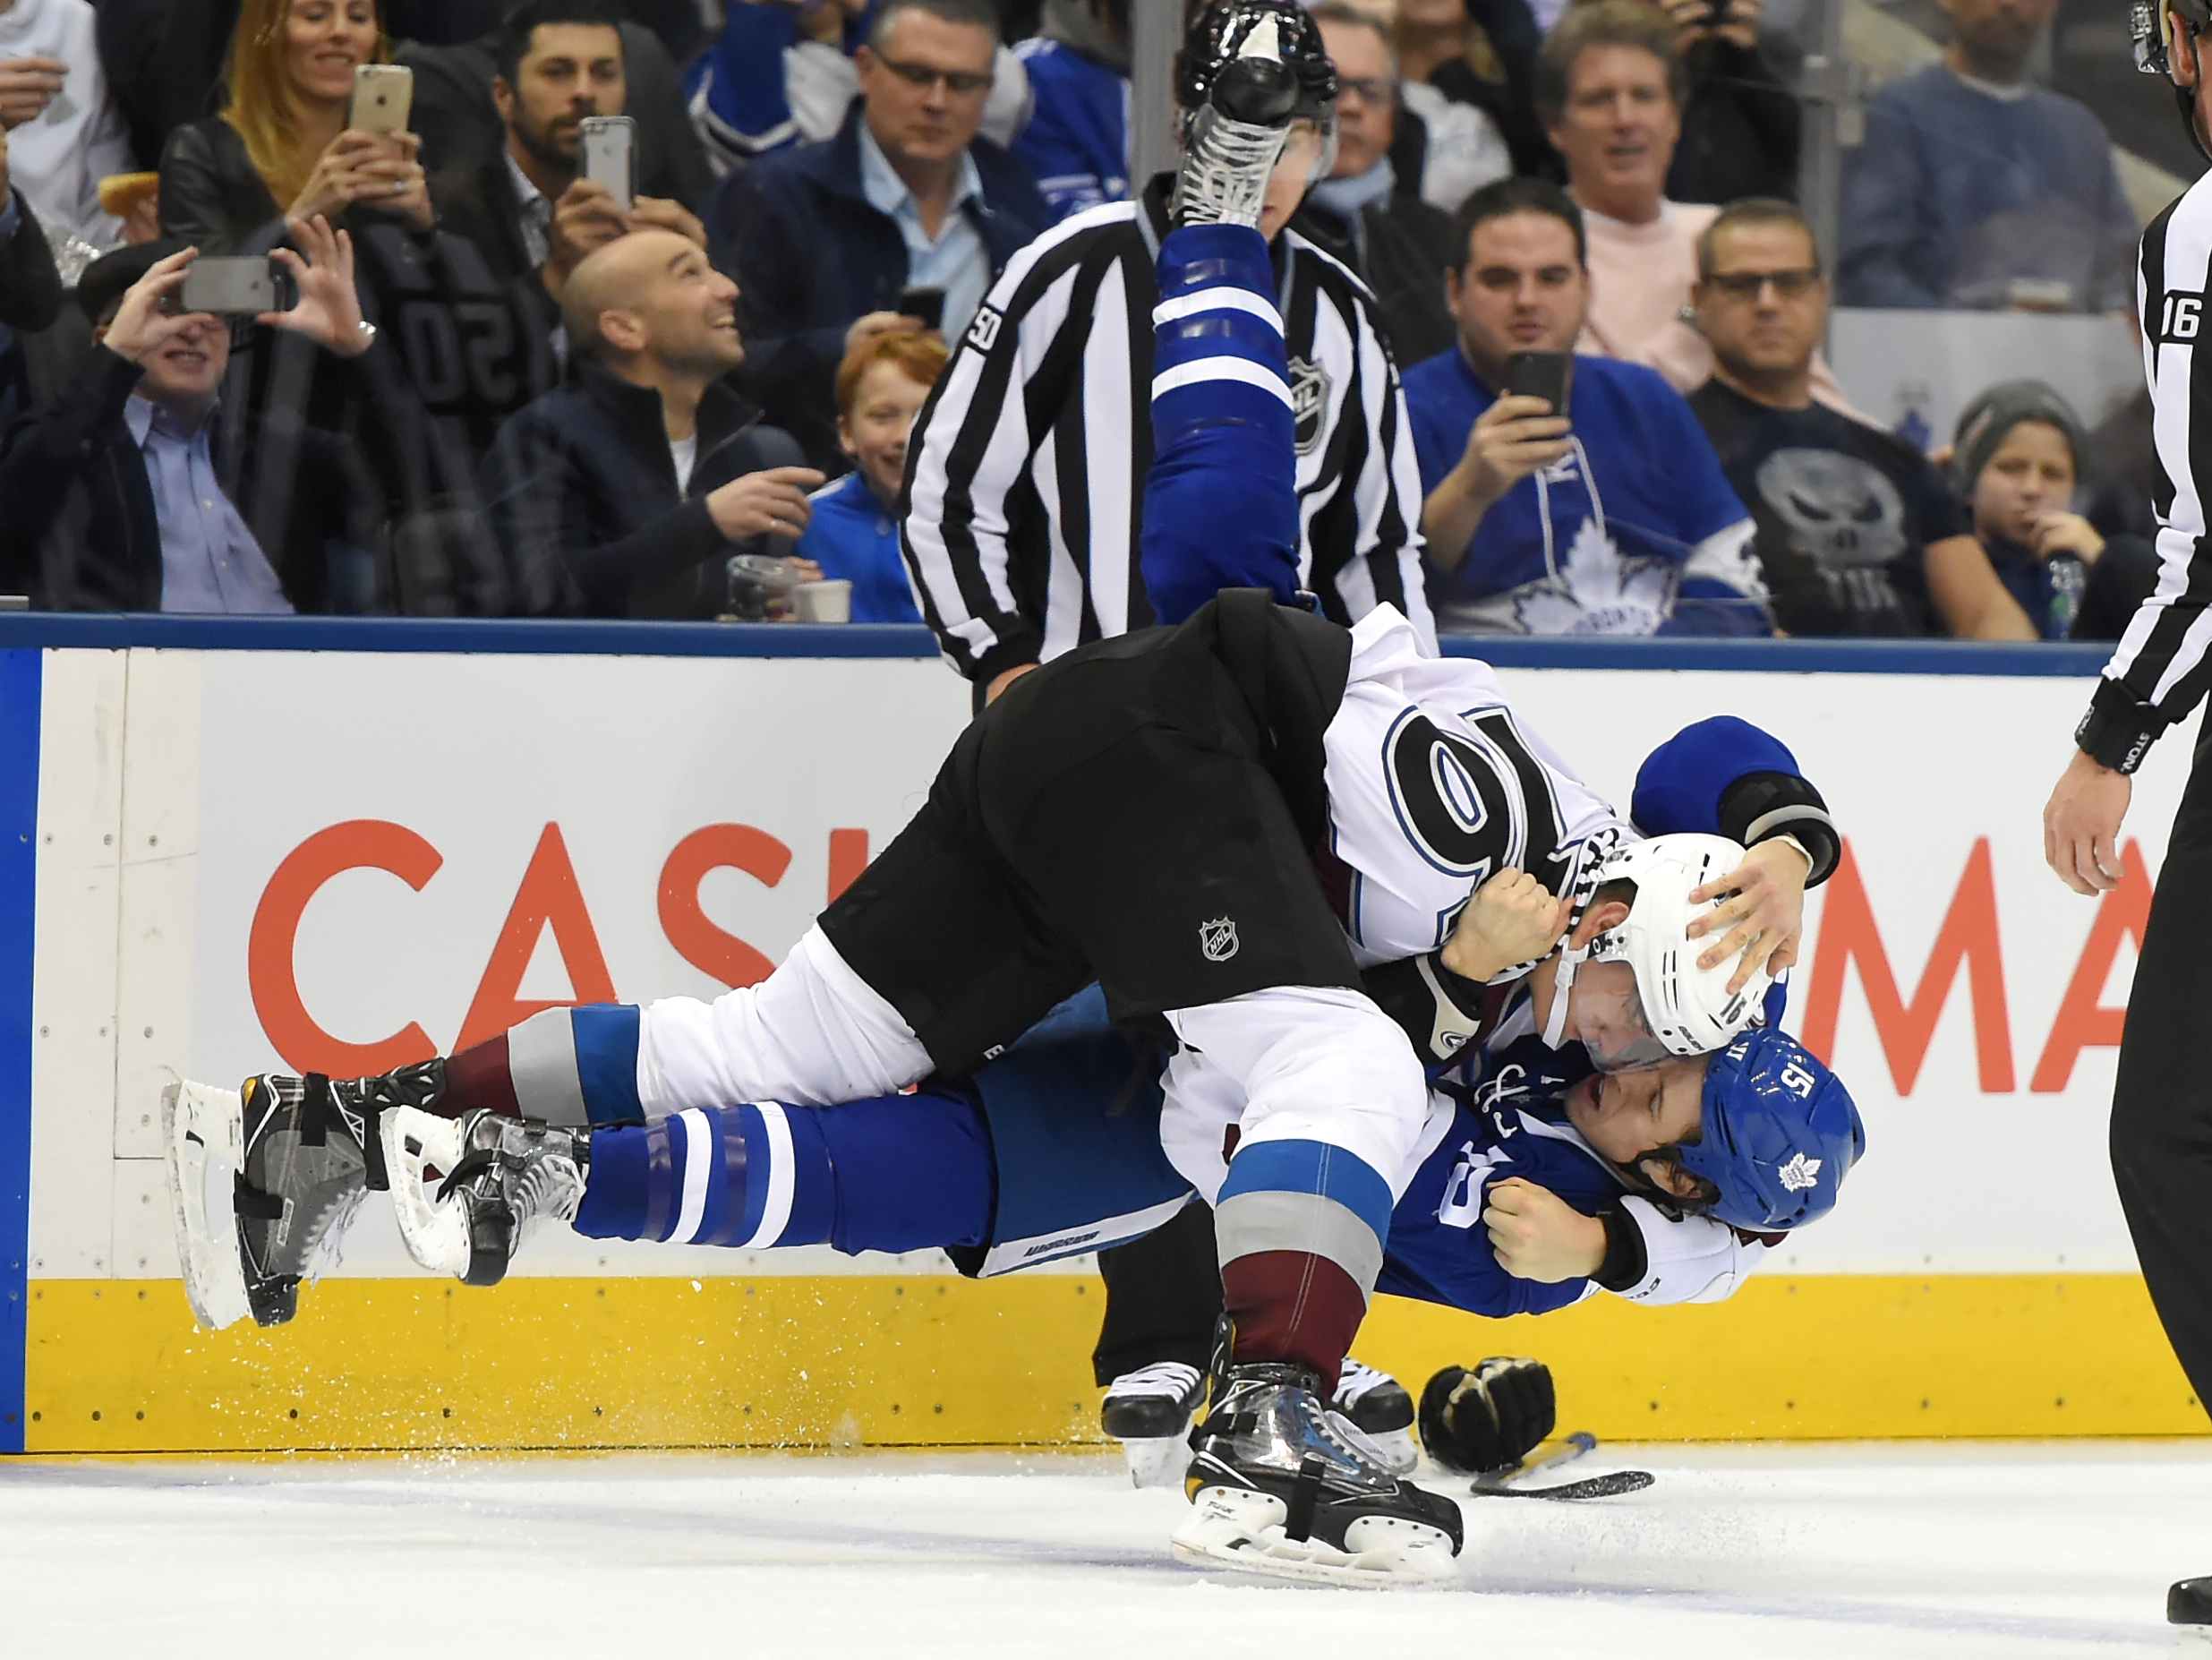 NHL: Colorado Avalanche at Toronto Maple Leafs